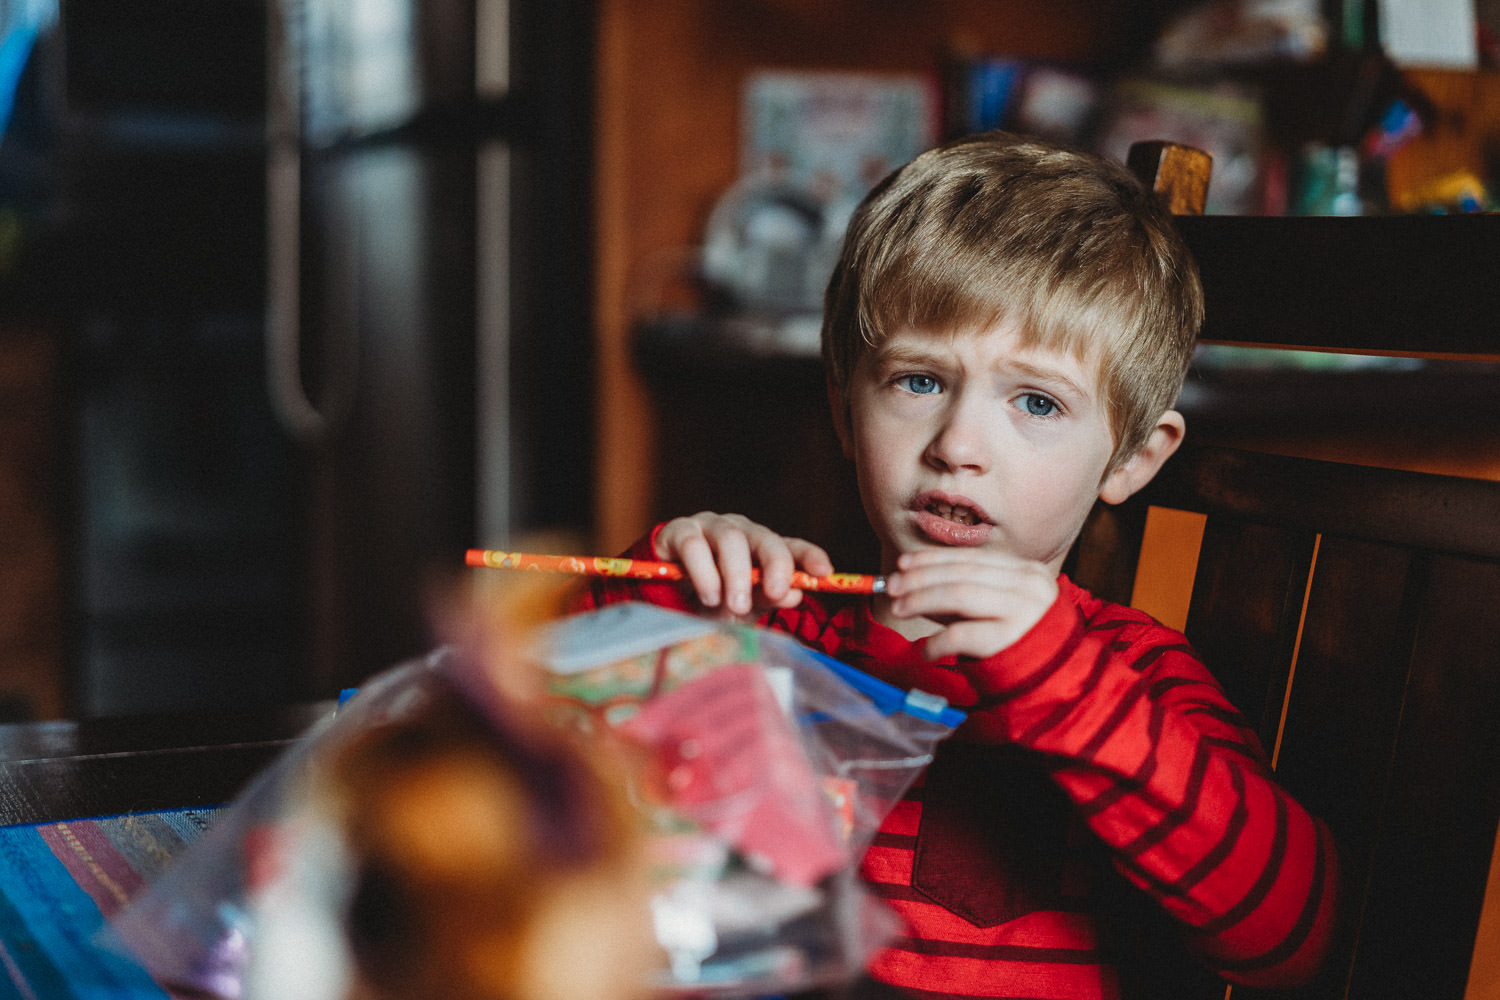 A little boy goes through his Valentines' treats.